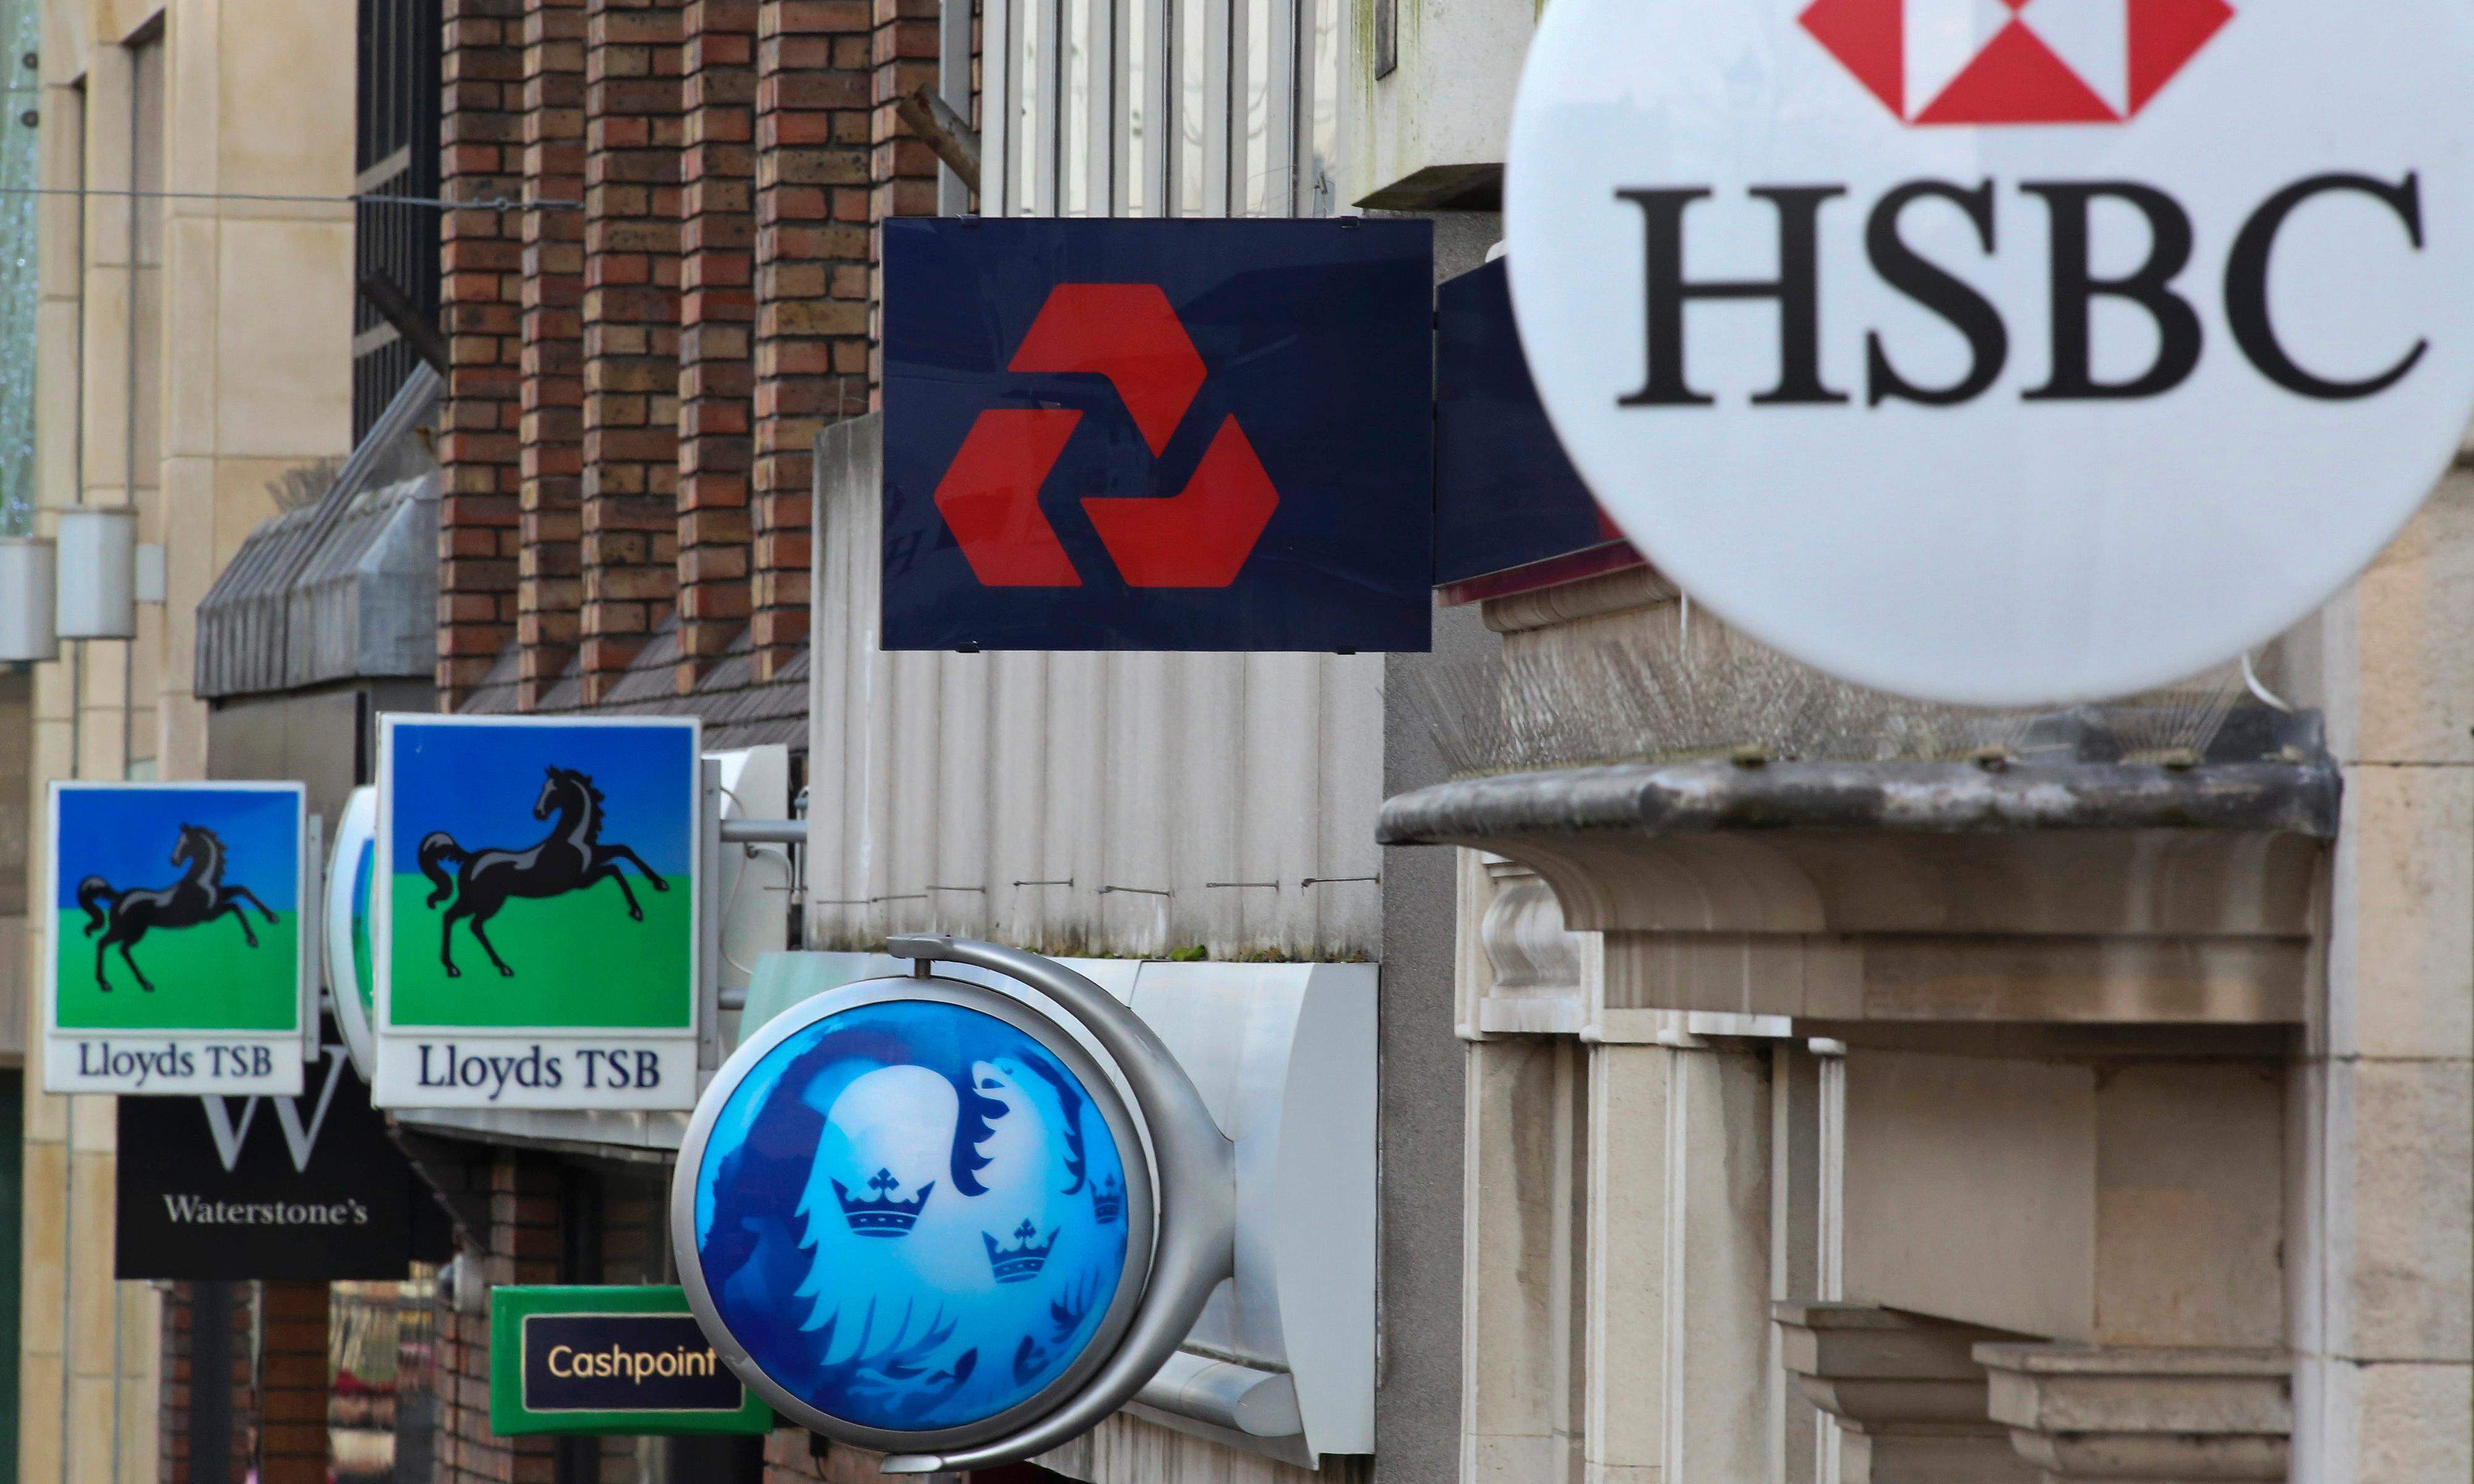 Bank fraud victims likely to be offered fairer treatment